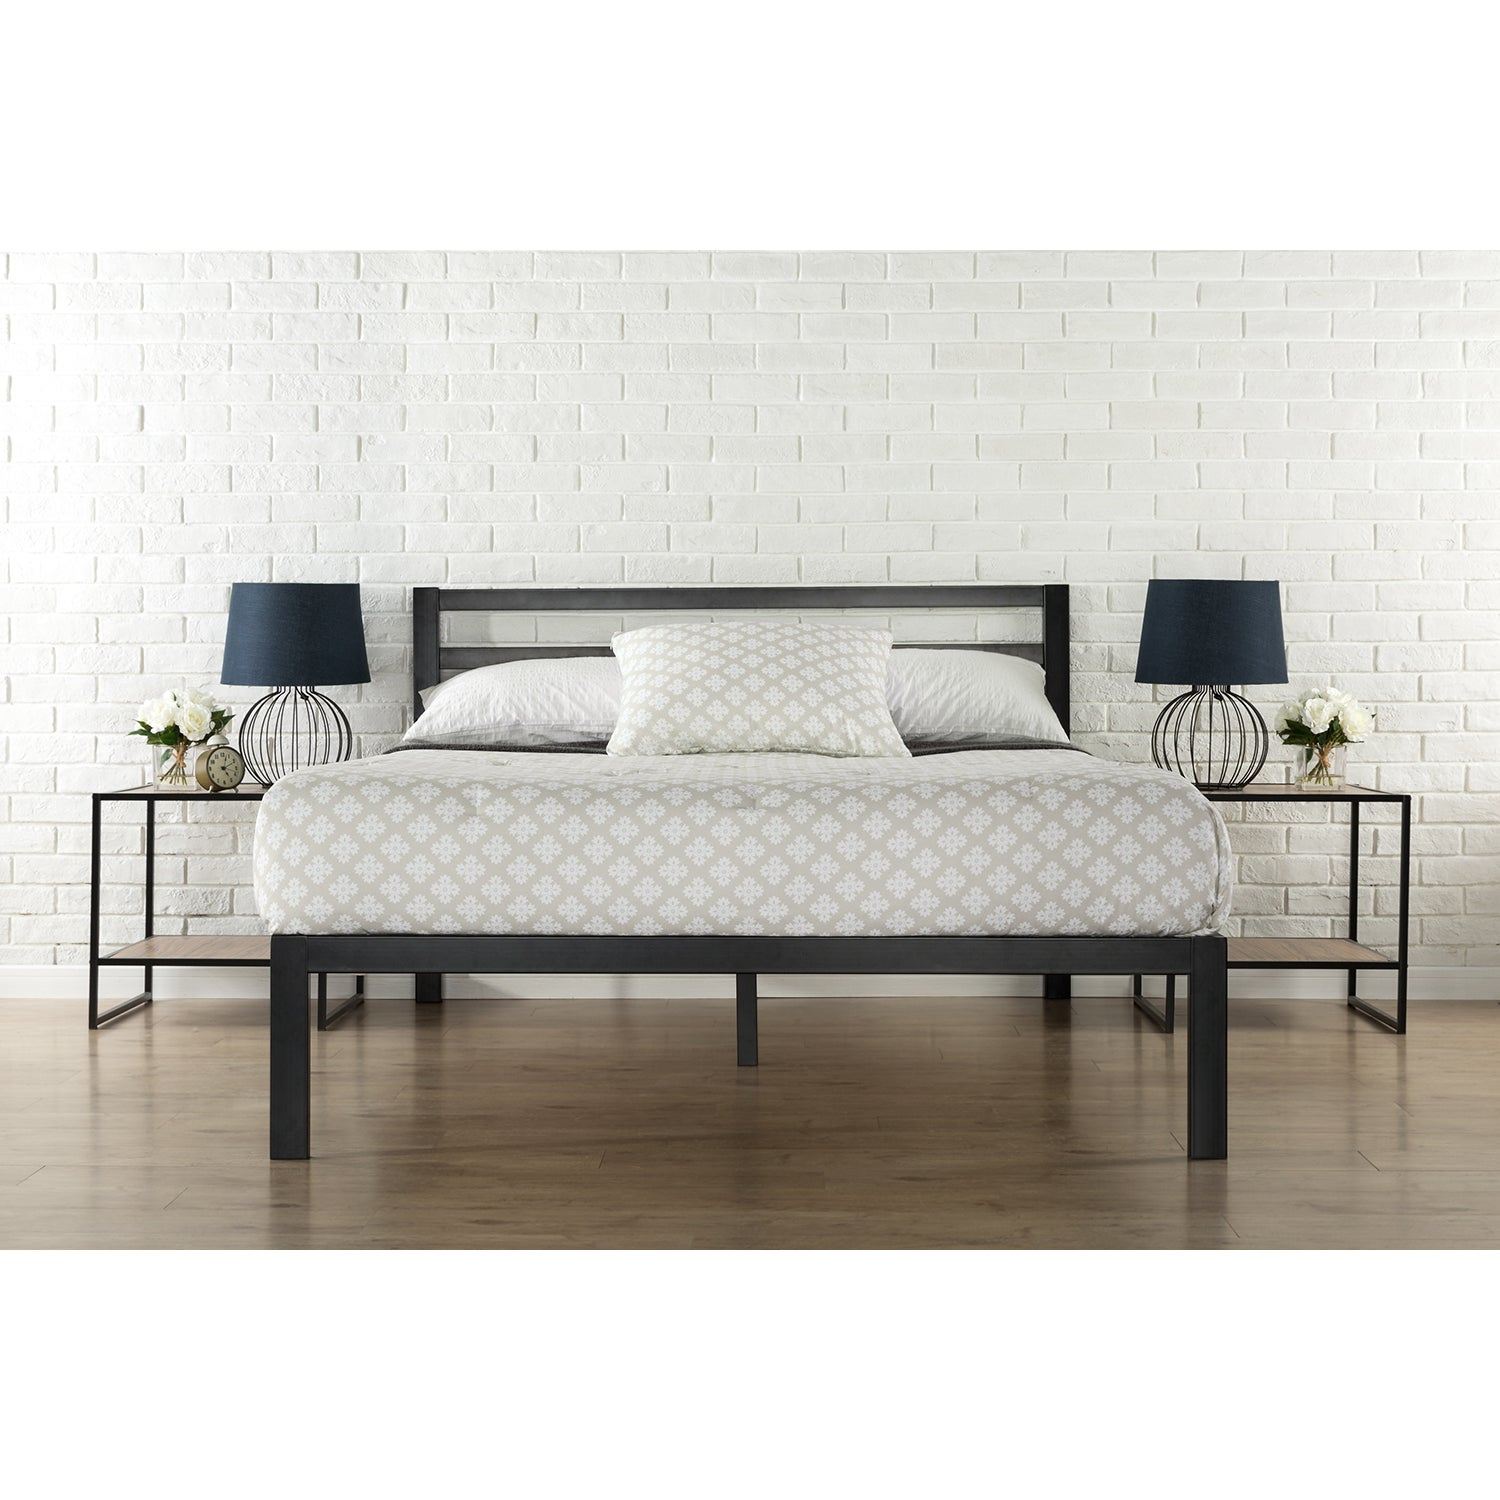 Priage 3000H King-Size Platform Bed Frame with Headboard ...